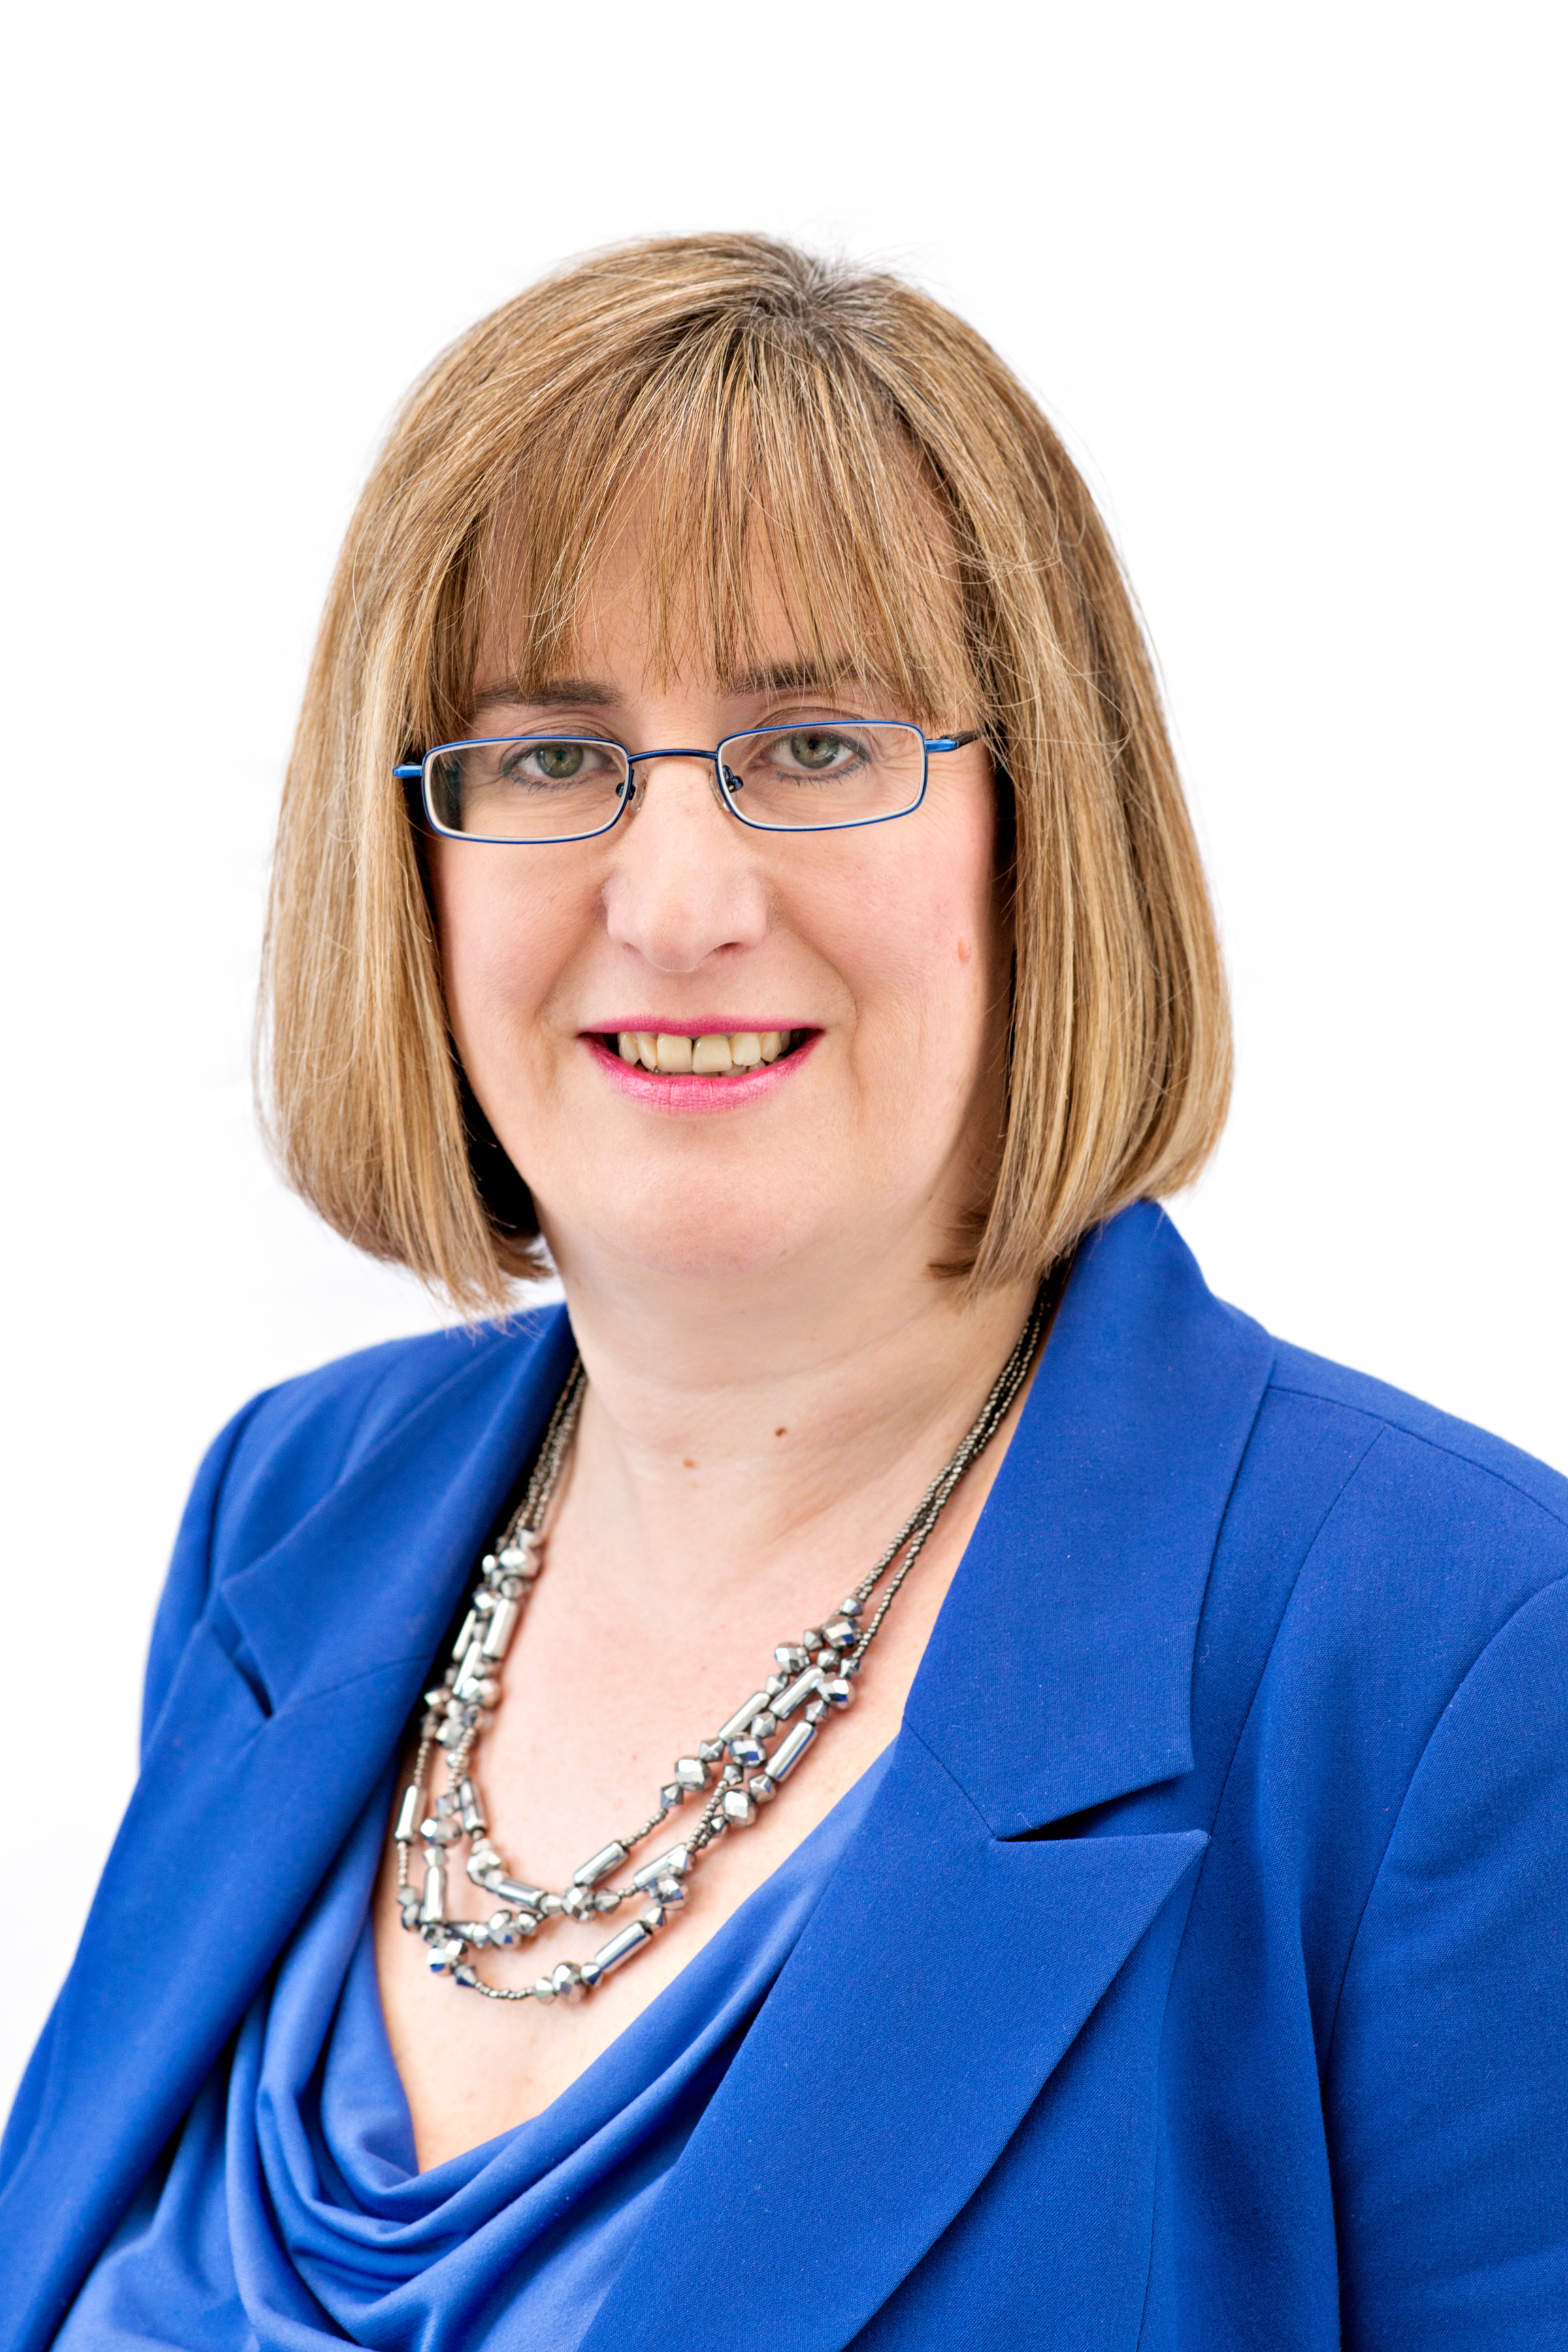 Lorna Trent - Networking Expert